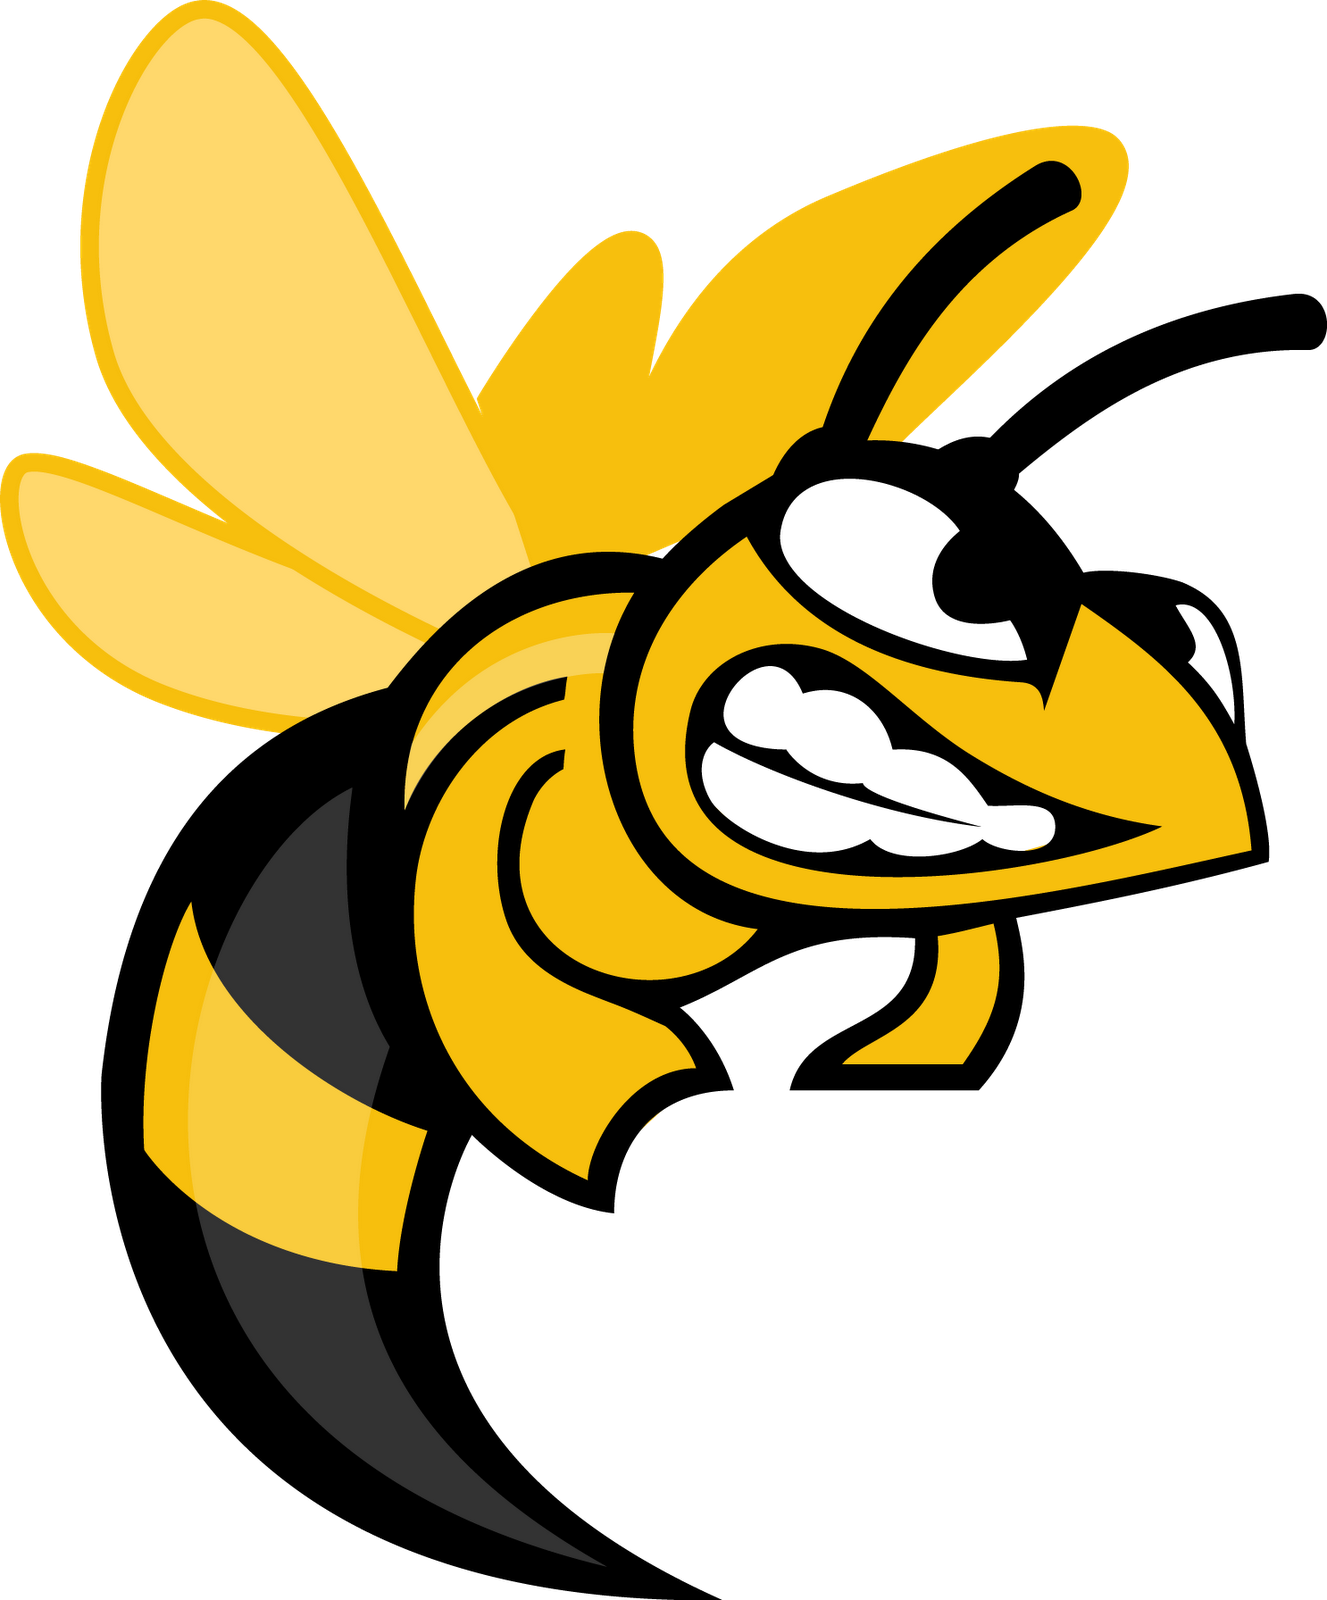 Hornet Mascot Embroidery Designs Clipart - Free Clip Art Images